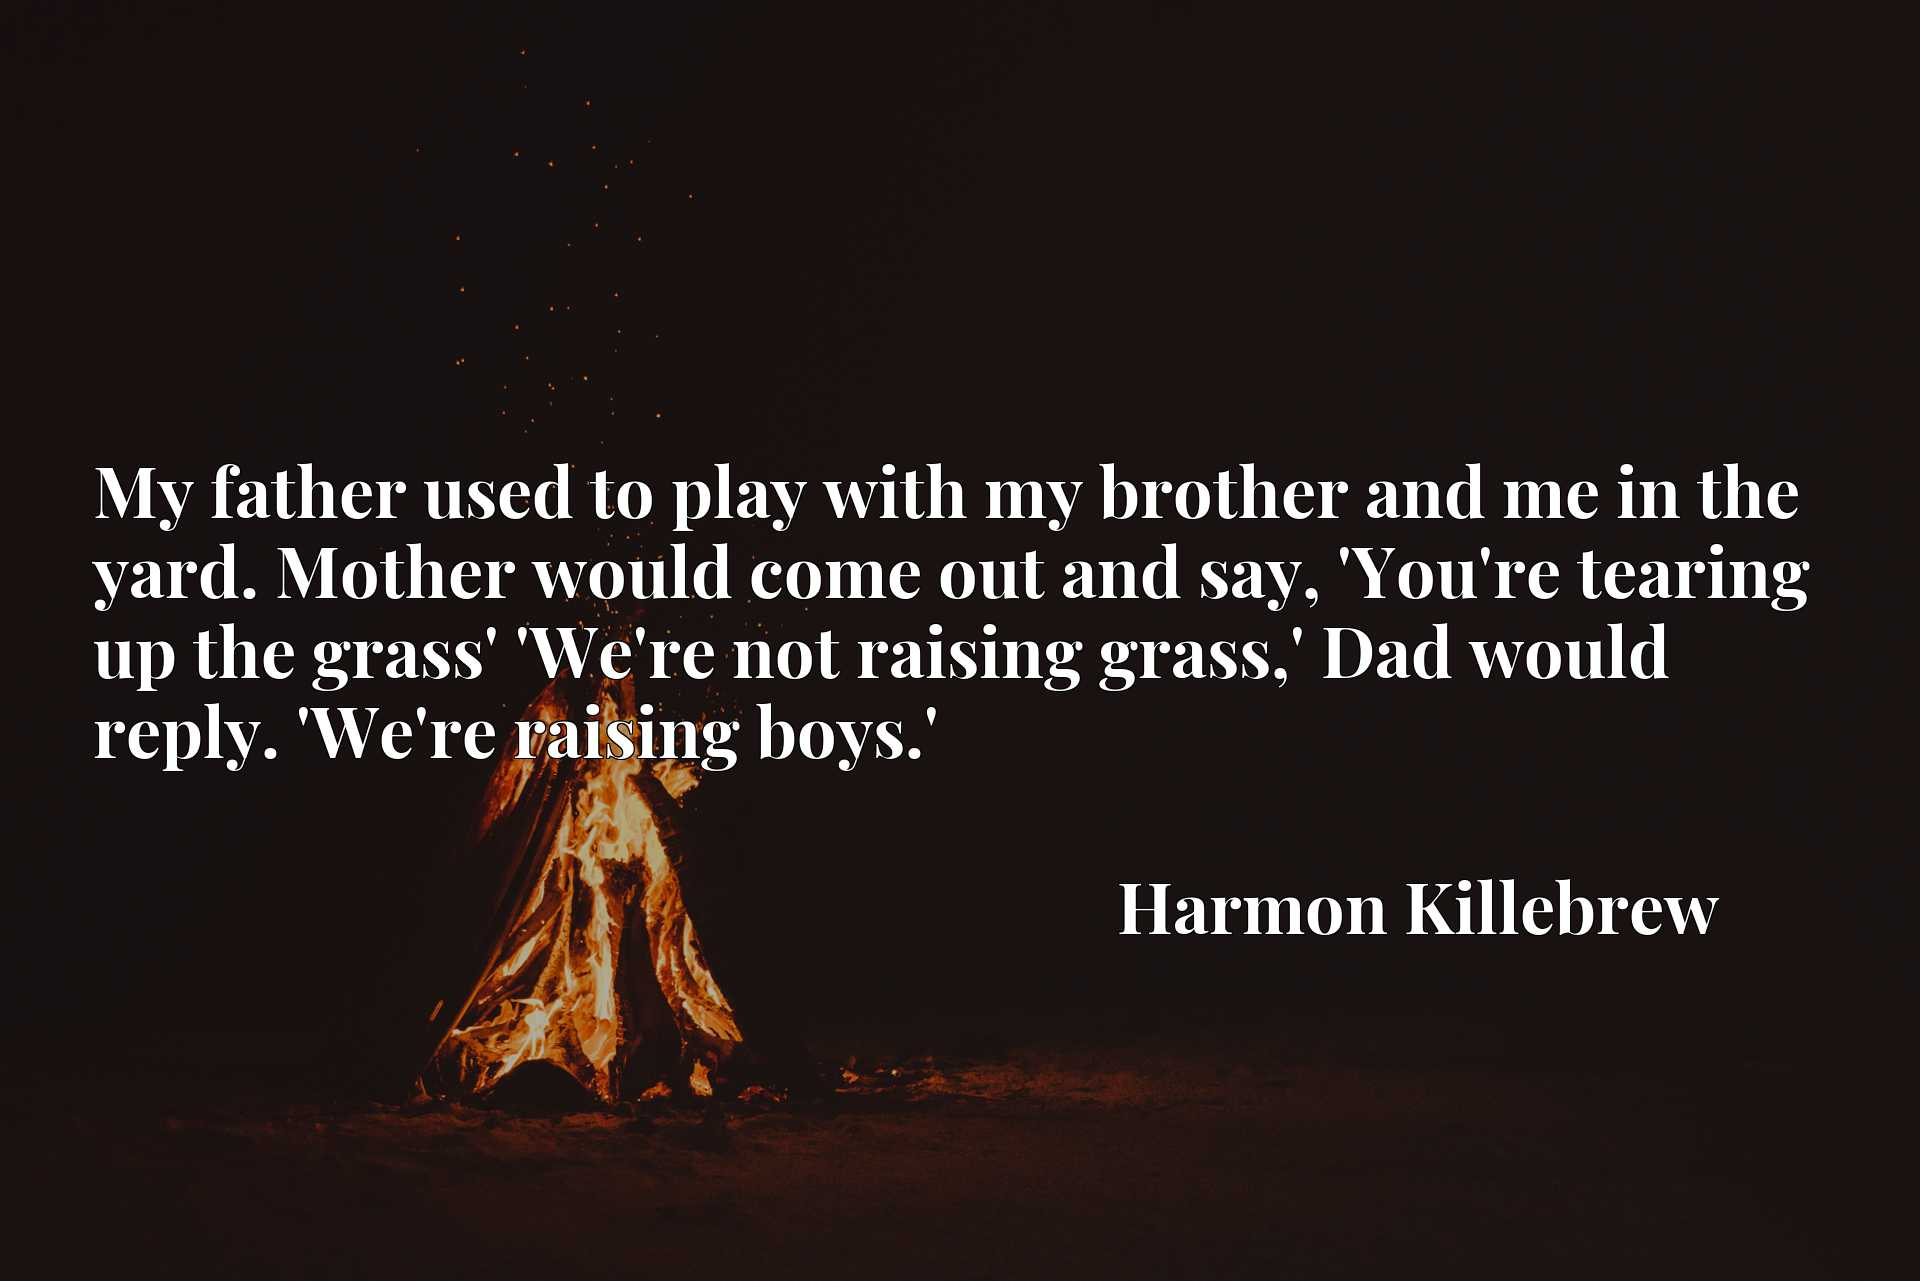 My father used to play with my brother and me in the yard. Mother would come out and say, 'You're tearing up the grass' 'We're not raising grass,' Dad would reply. 'We're raising boys.'